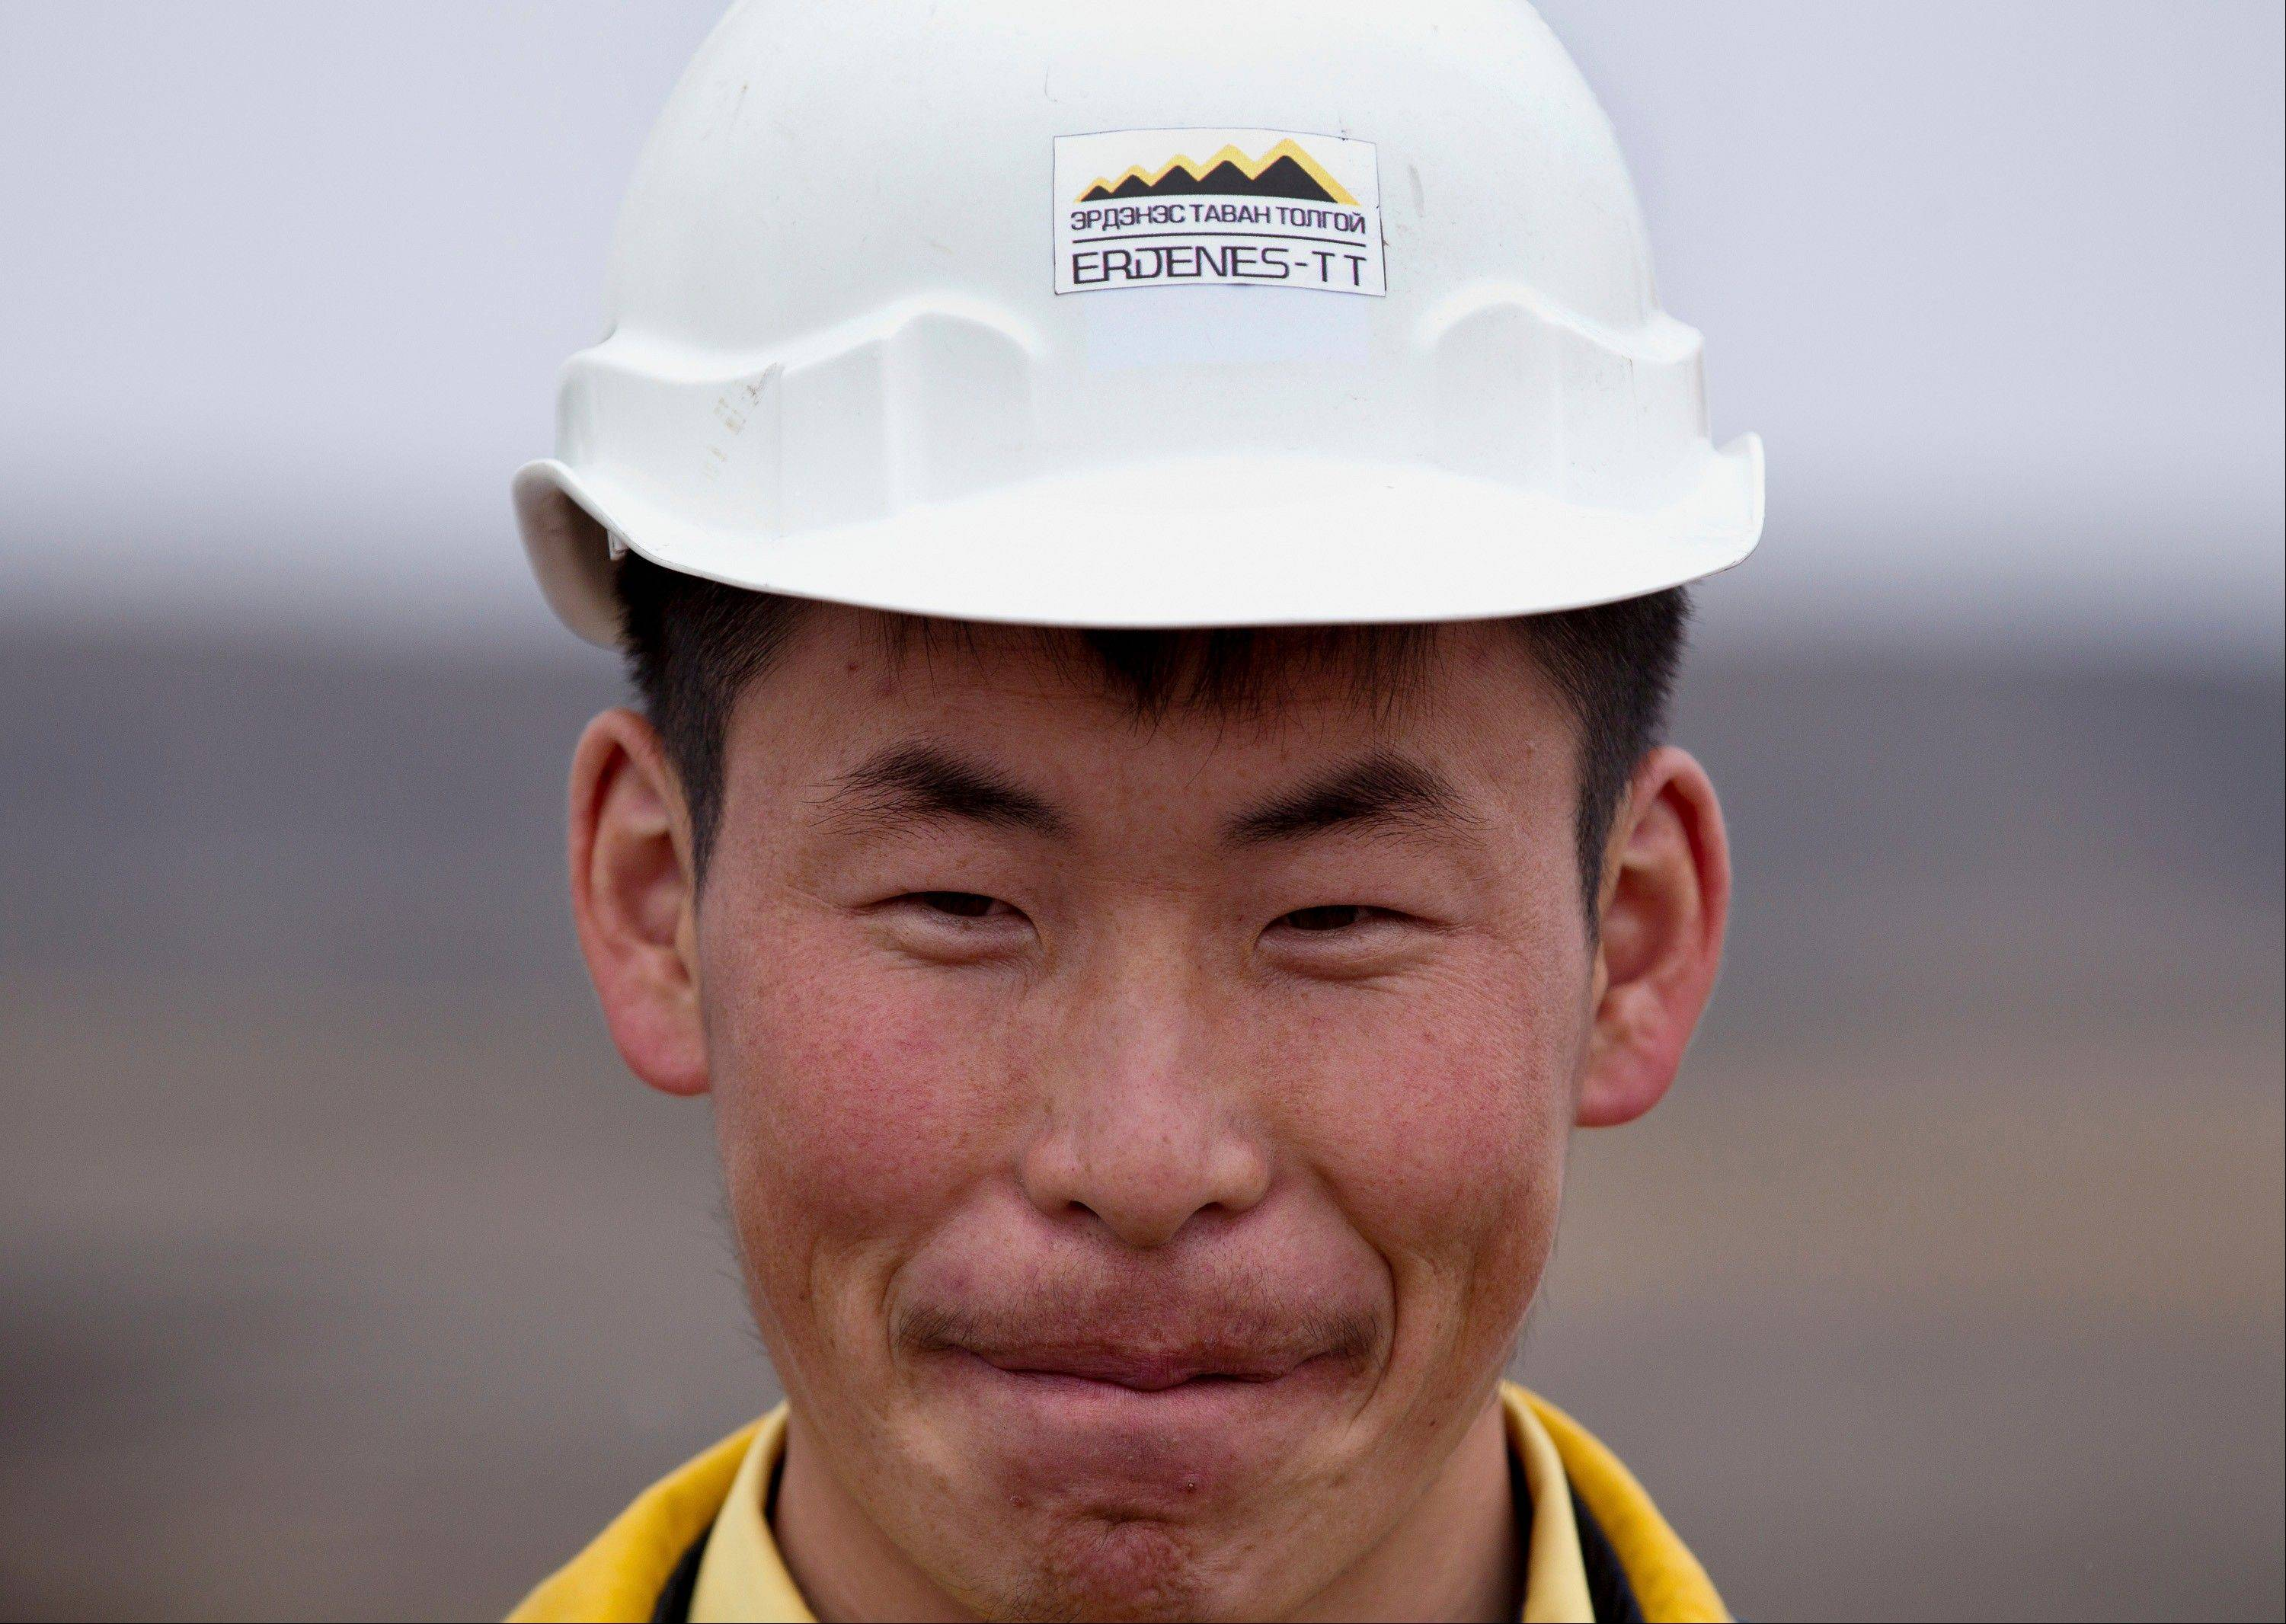 A Mongolian miner smiles while working at Erdenes Tavan Tolgoi, a coal mining company in Tavan Tolgoi, southern Mongolia. Chinese demand for copper and especially coal has propelled the Mongolian economy to one of the world's fastest growing, making some wealthy and driving down poverty in a still poor country, and China wants a larger share of the resources.